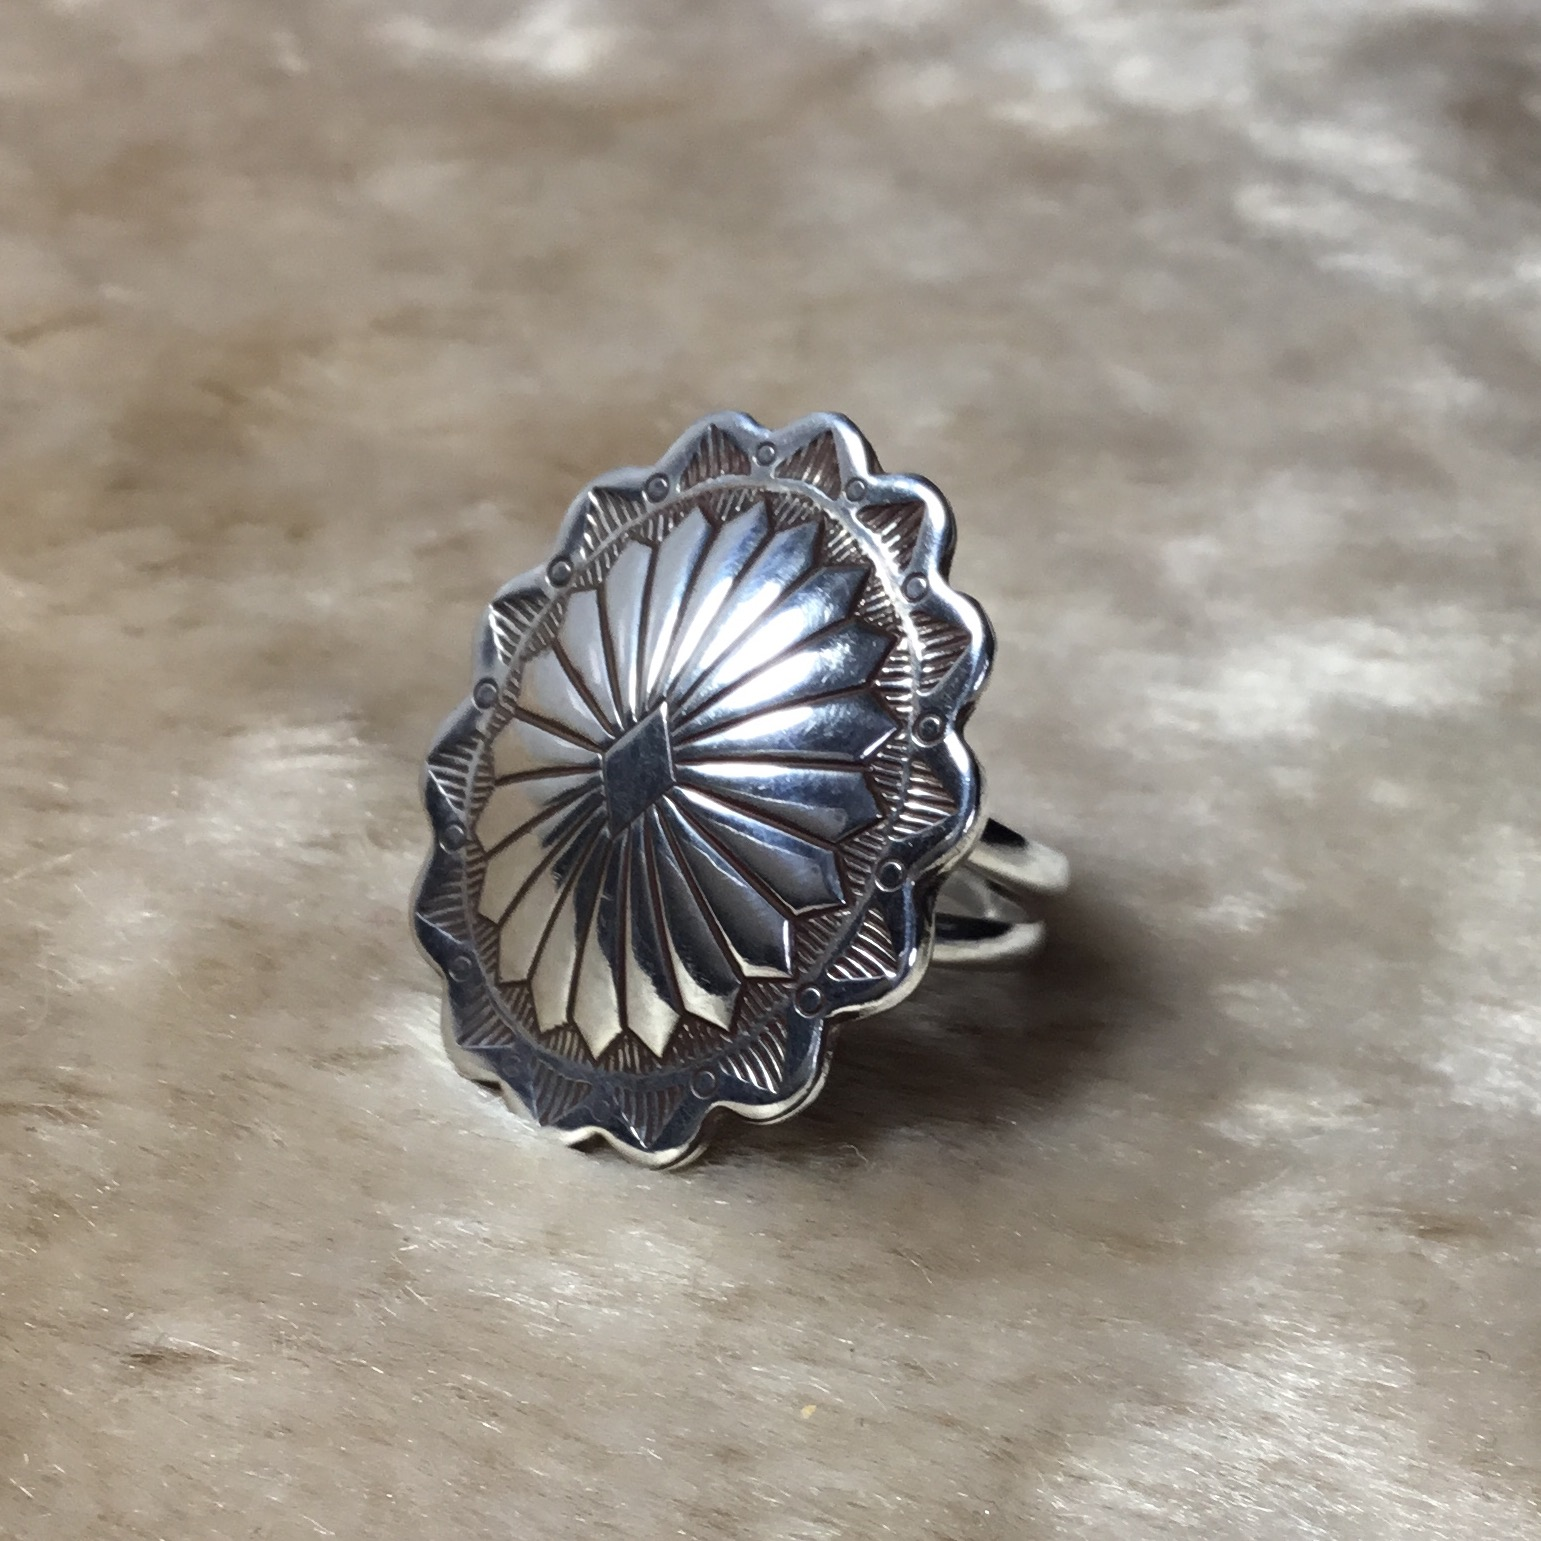 Large Concho Ring From RISH JEWELRY